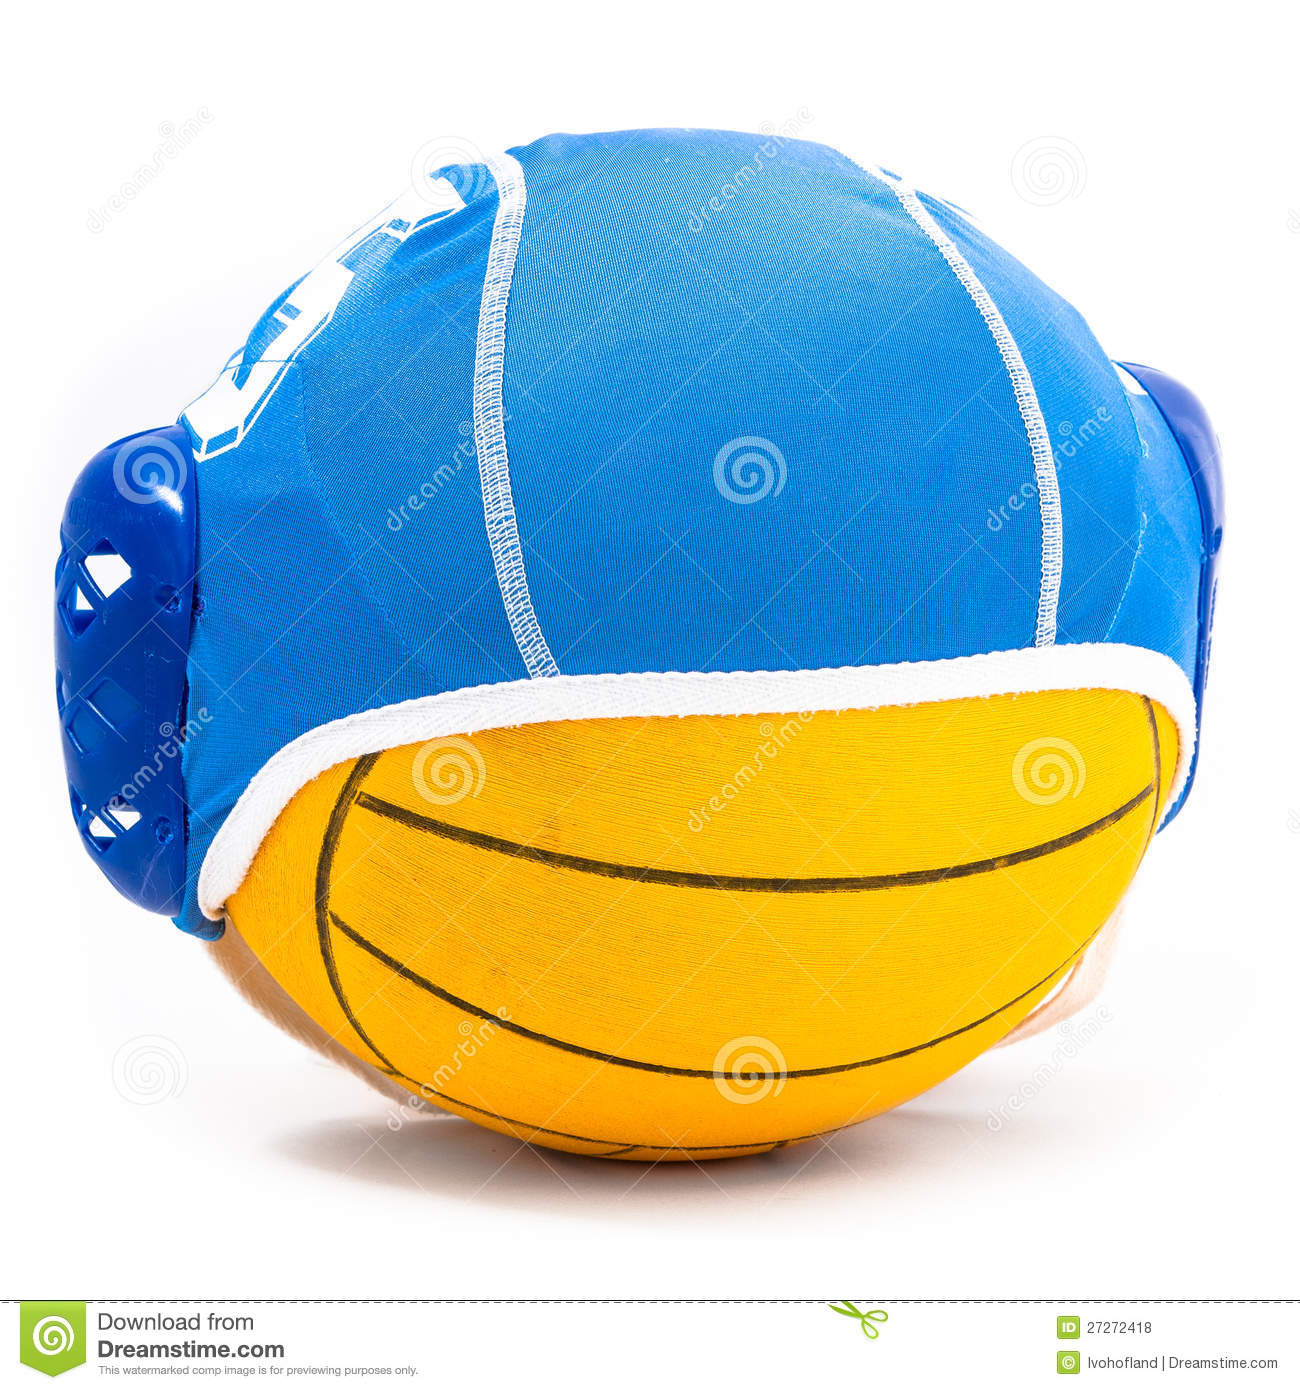 5d99bf975d2 Water polo ball and cap stock photo. Image of pattern - 27272418